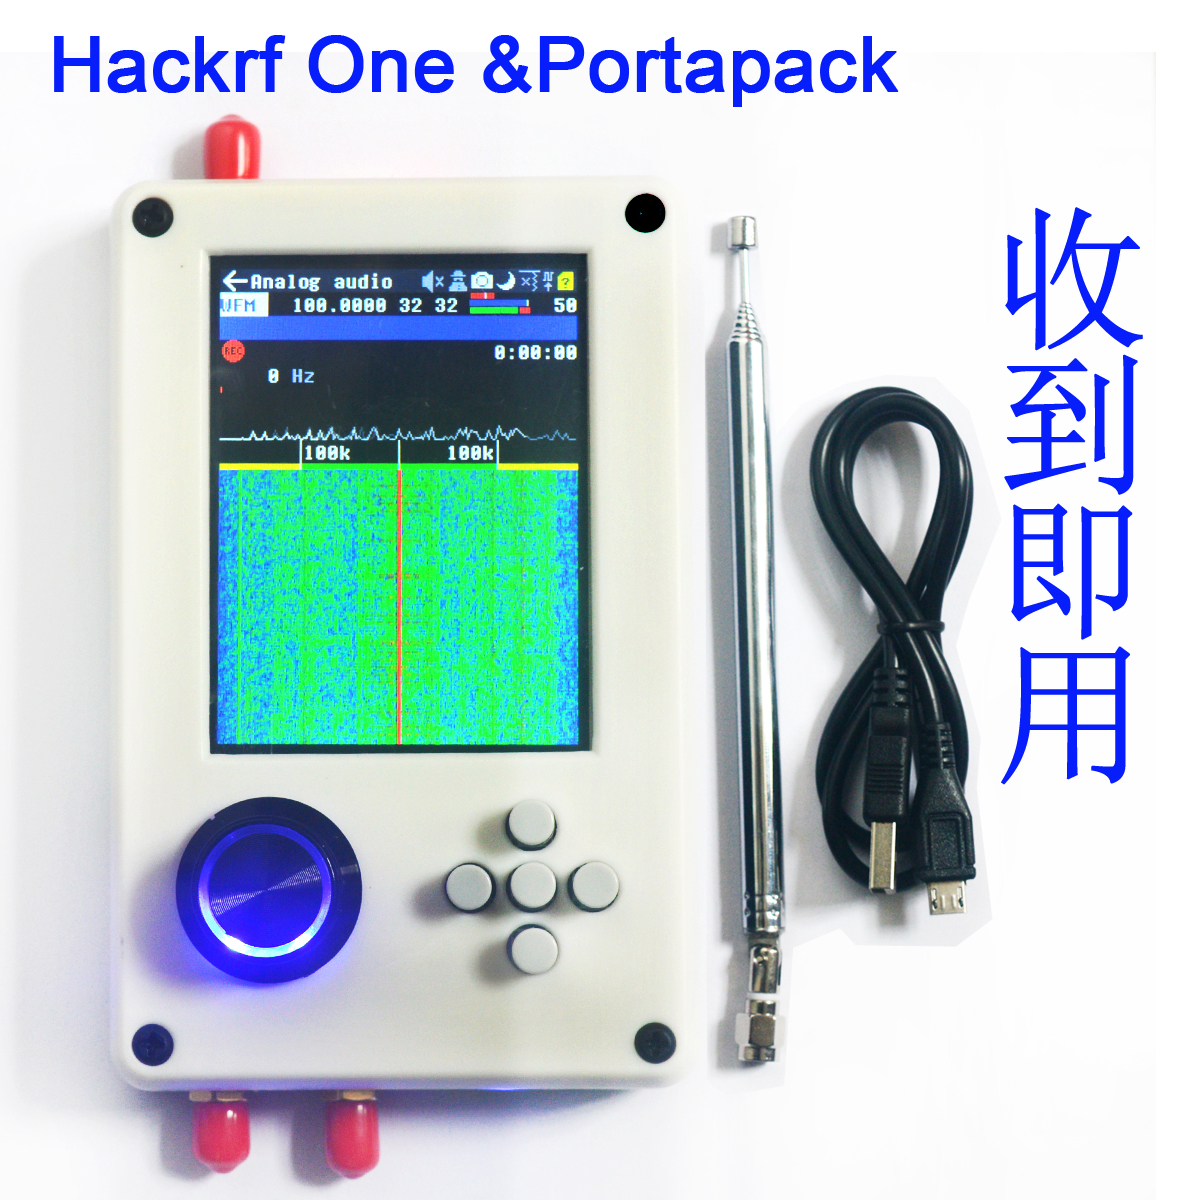 PORTAPACK H2 and HACKRF One control the SDR radio full-featured radio transceiver